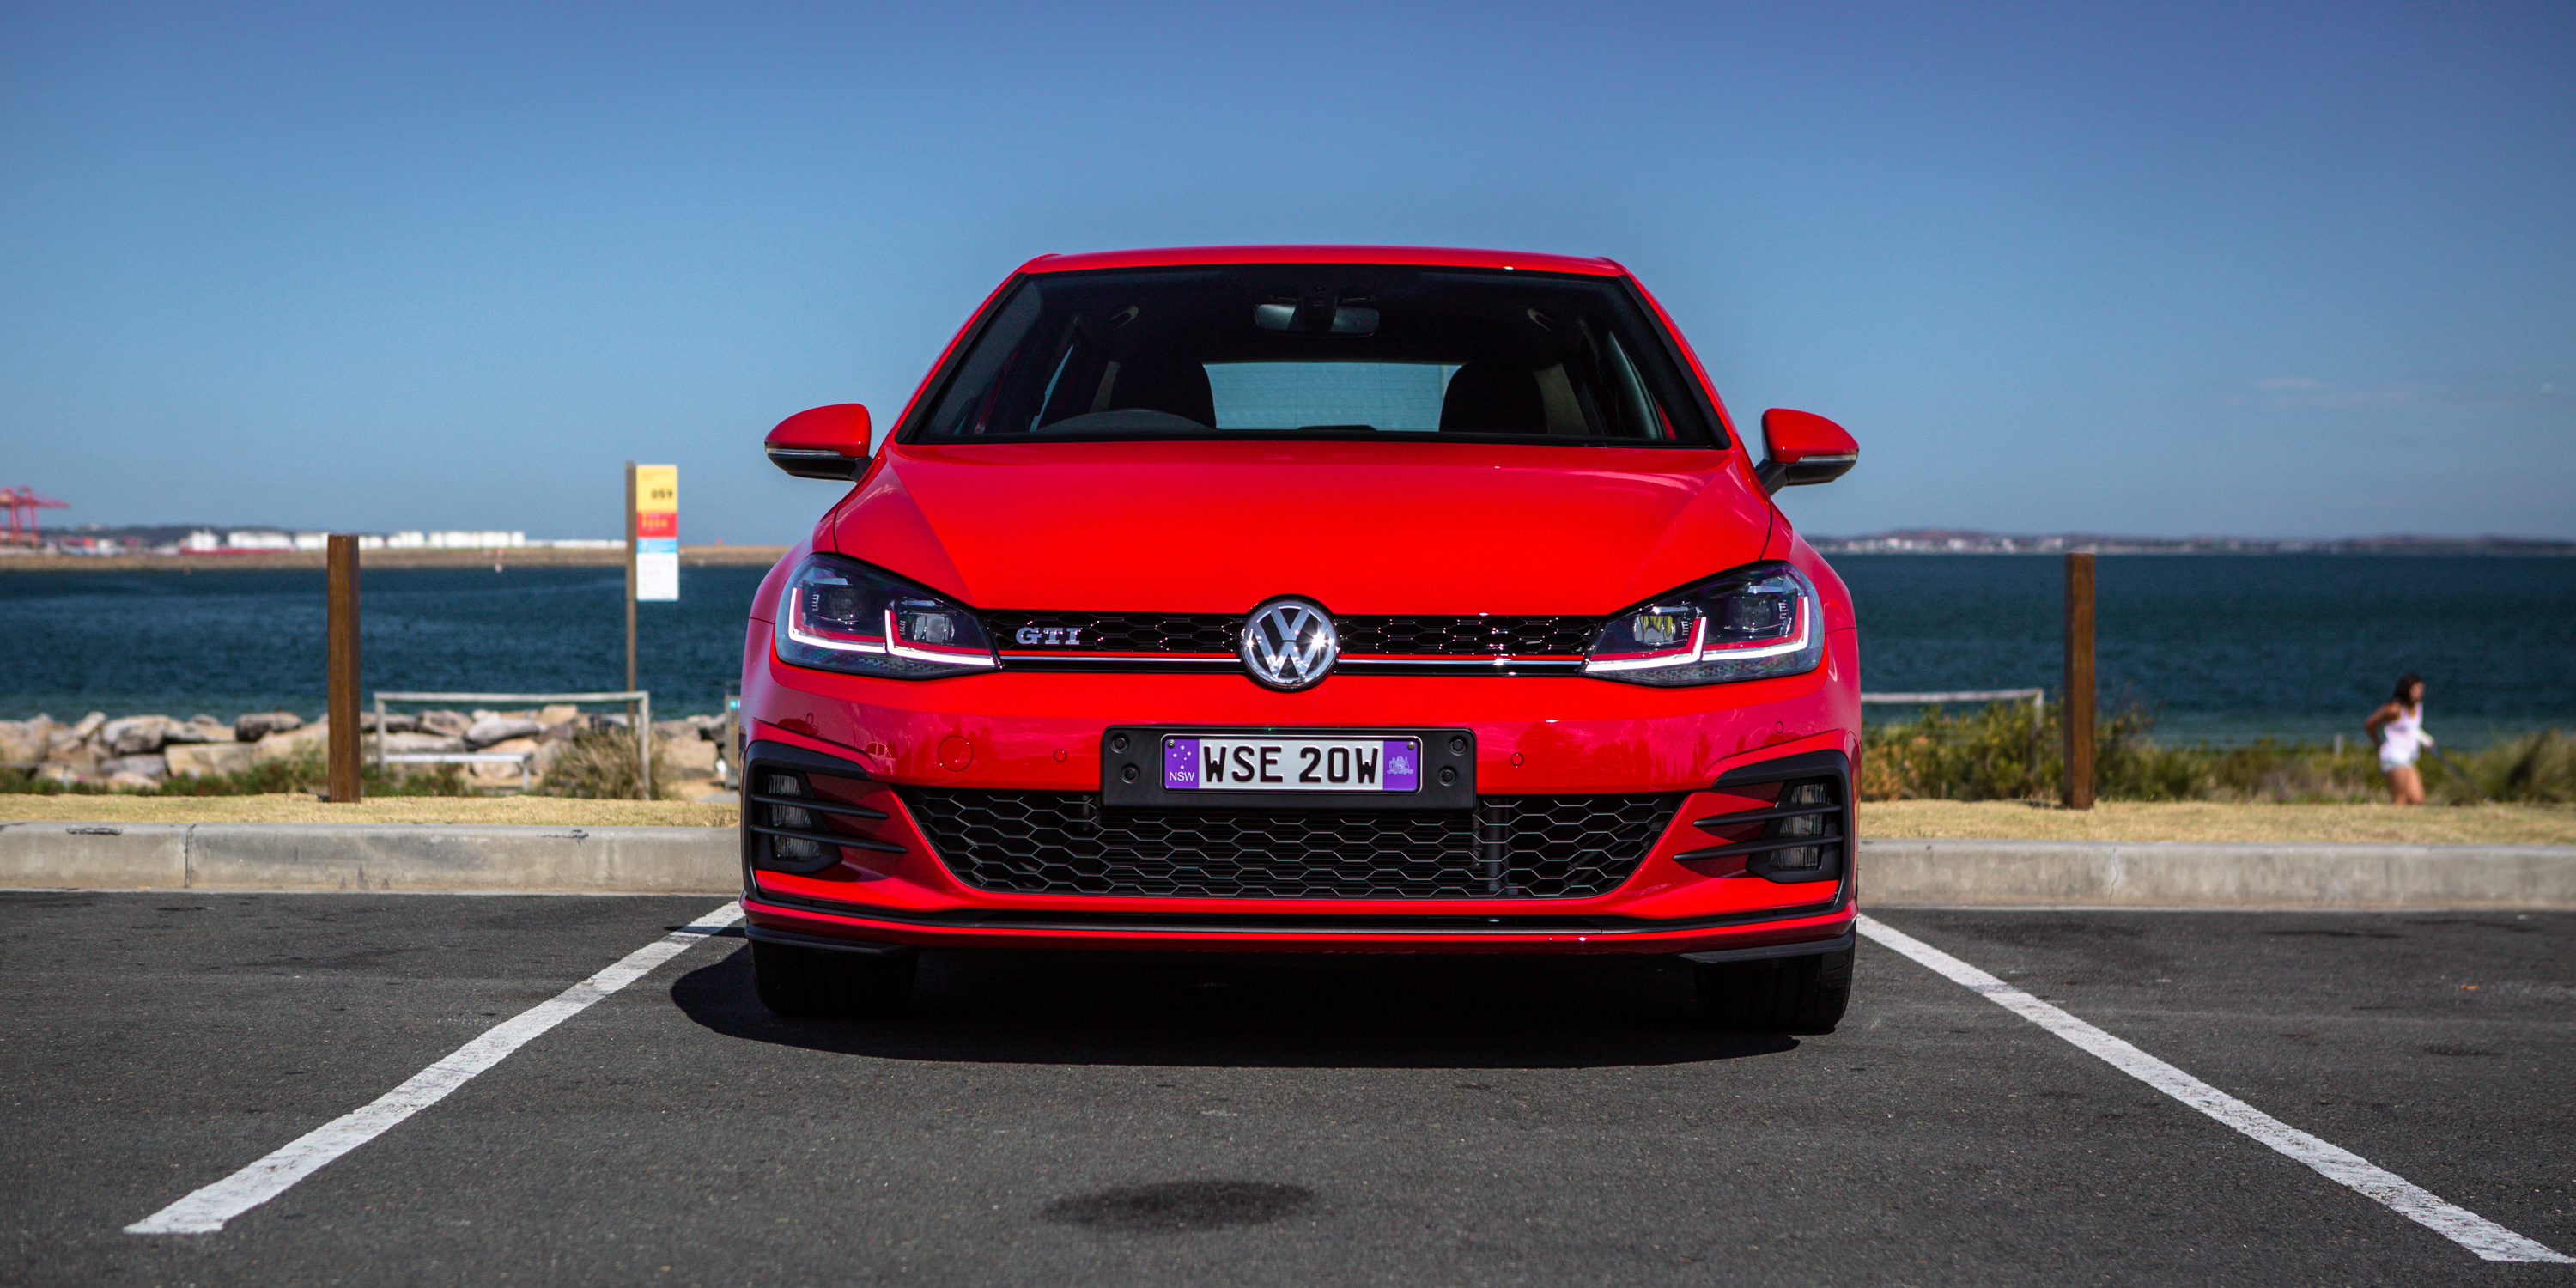 Volkswagen Golf GTI photo 183015